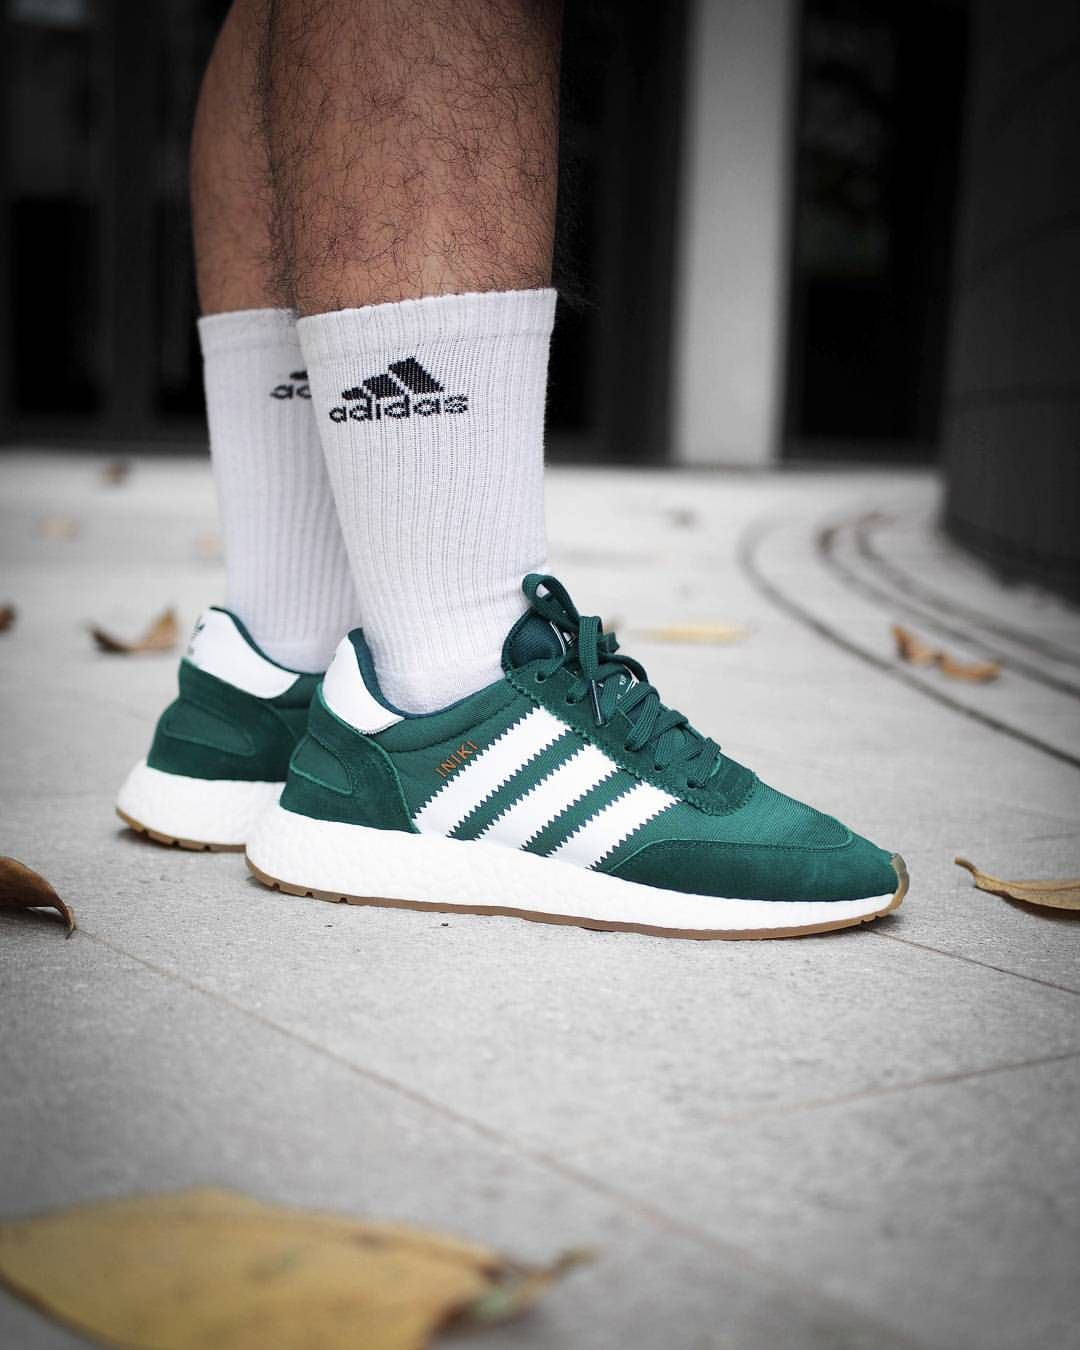 adidas Originals Iniki Runner: Green | Sneakers, Mens